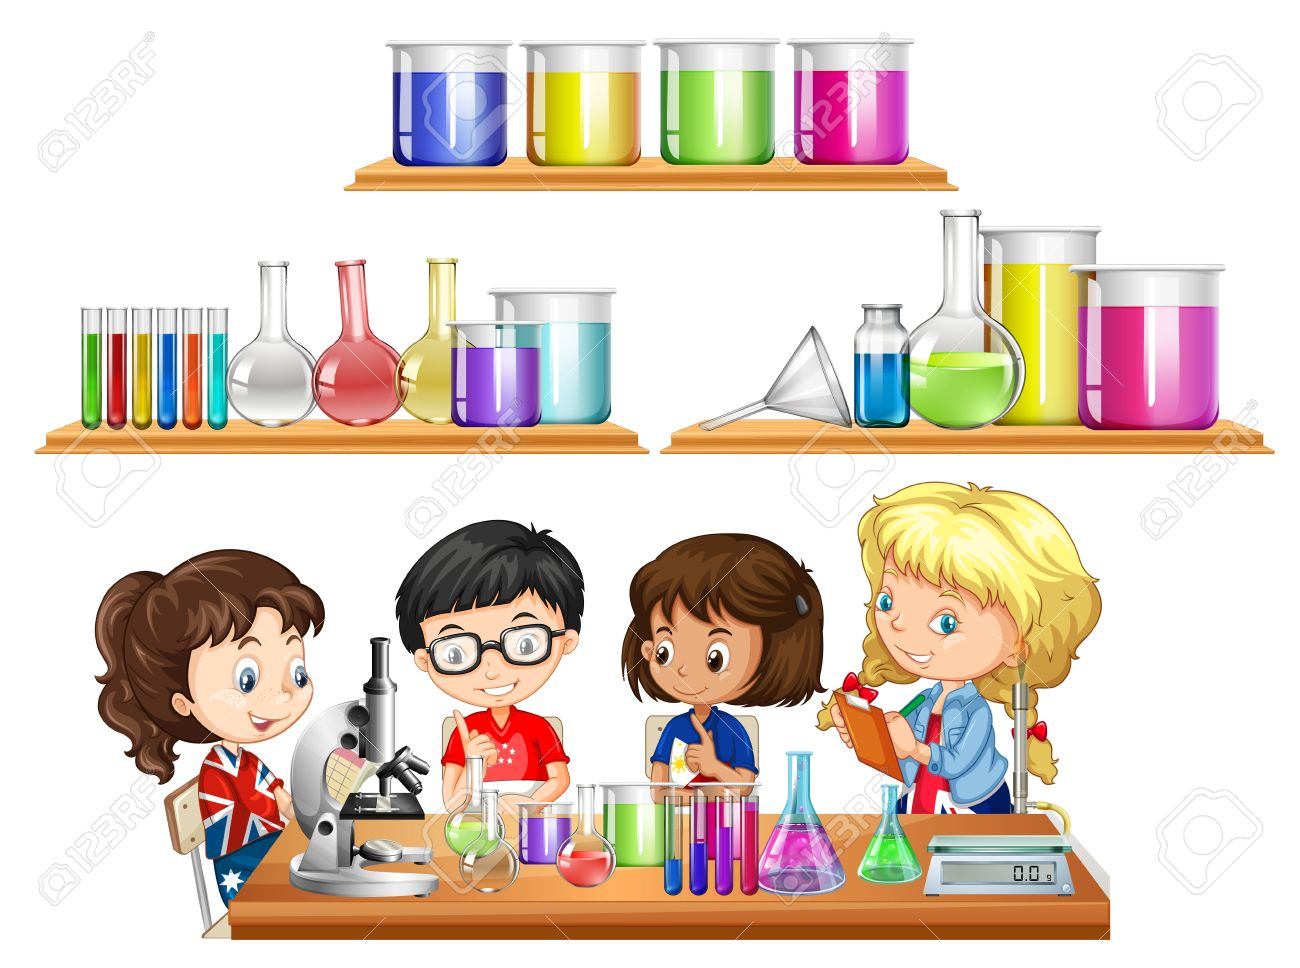 kids doing science experiment and set of beakers illustration rh 123rf com science experiment clipart free Cooking Clip Art